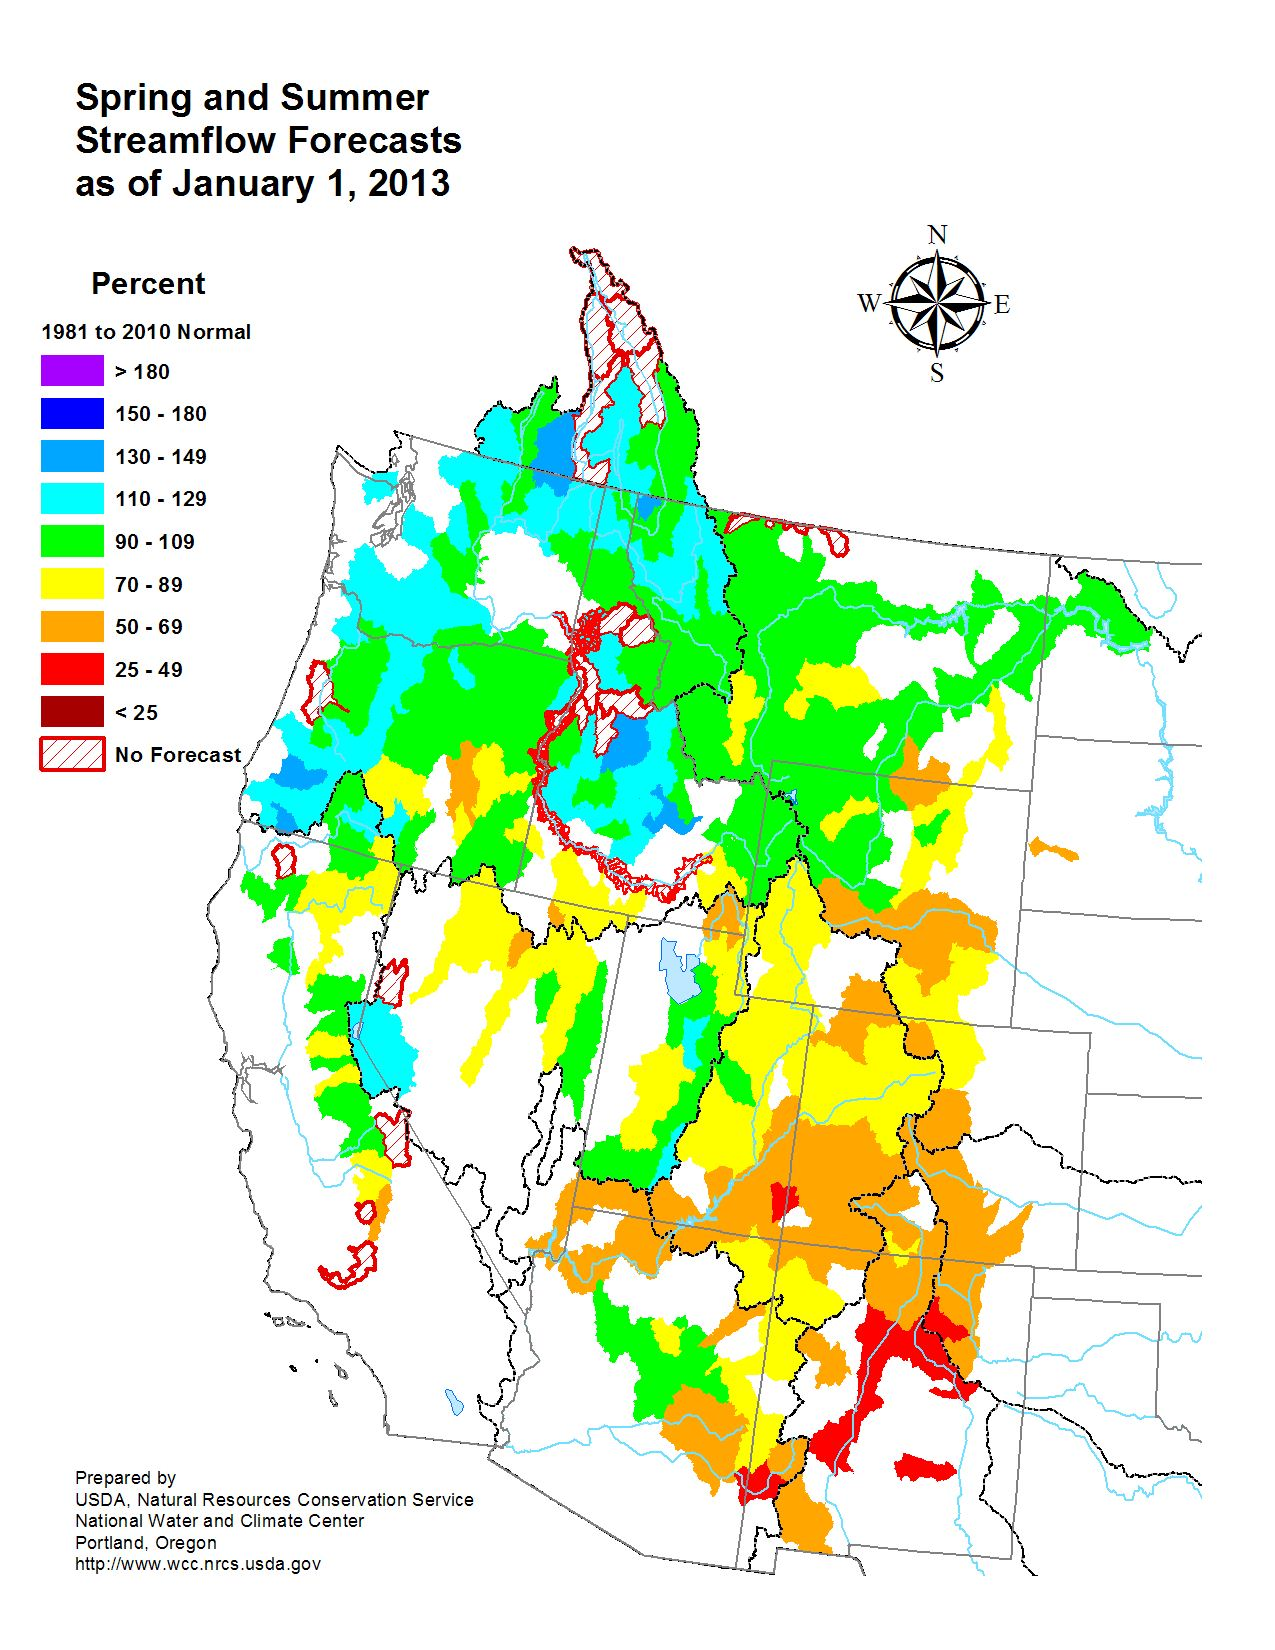 Less Than Average Water Supplies Possible In Some Western States Nrcs